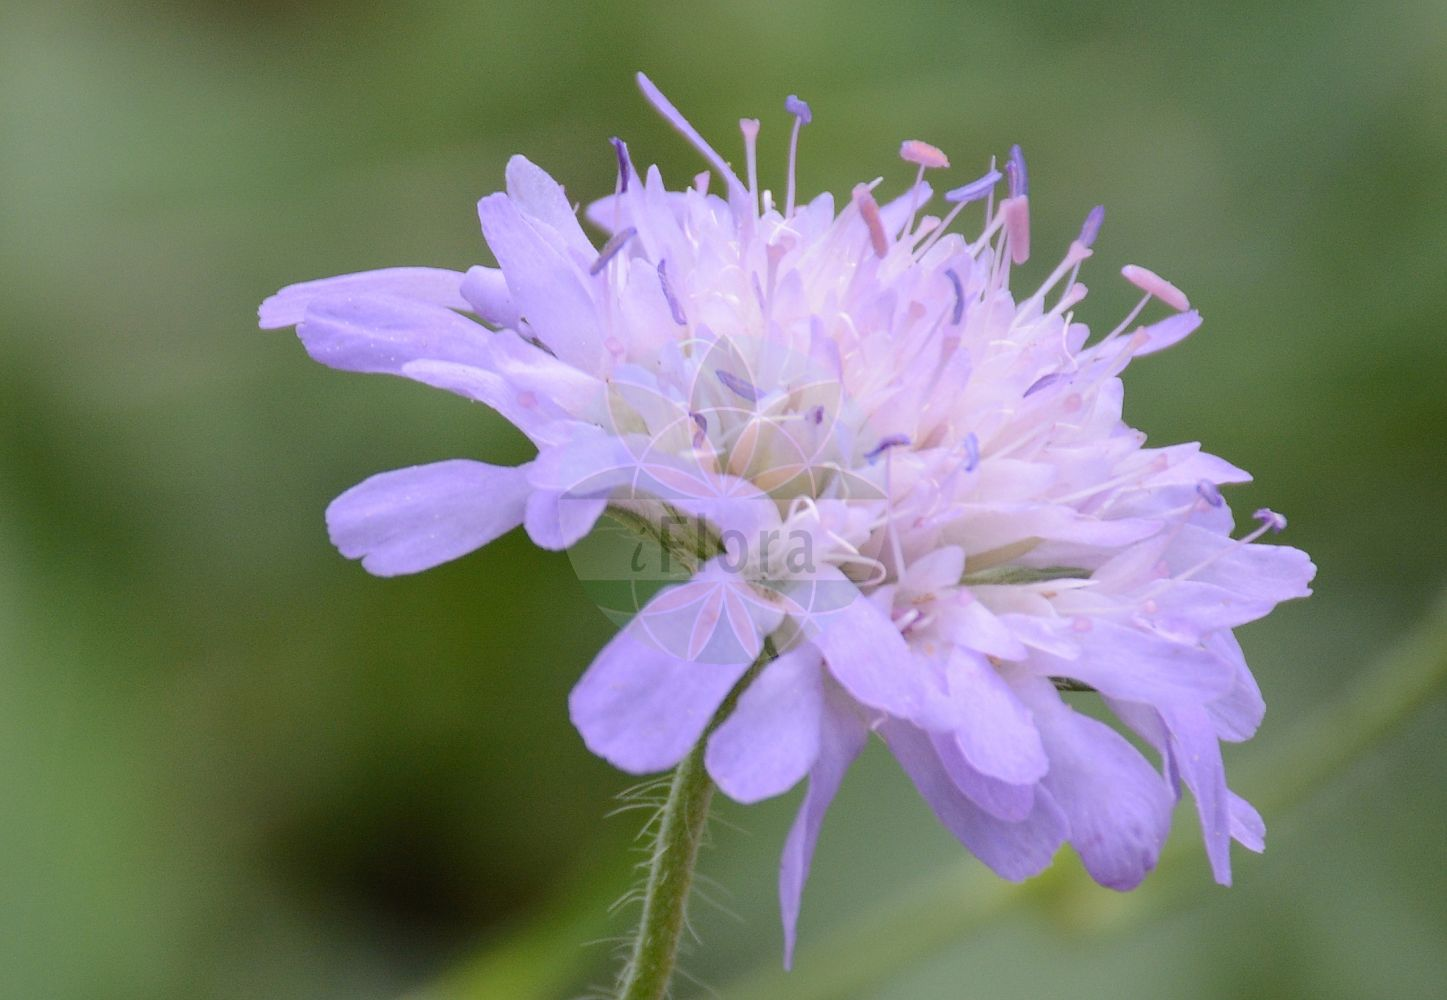 Foto von Knautia arvensis (Wiesen-Witwenblume - Field Scabious). Das Foto wurde in Dresden, Sachsen, Deutschland aufgenommen. ---- Photo of Knautia arvensis (Wiesen-Witwenblume - Field Scabious).The picture was taken in Dresden, Sachsen, Germany.(Knautia arvensis,Wiesen-Witwenblume,Field Scabious,Knautia avernica,Knautia boderei,Knautia borderei,Knautia catalaunica,Knautia timeroyi,Scabiosa arvensis,Scabiosa collina,Scabiosa dubia,Scabiosa polymorpha,Trichera arvensis,Trichera timeroyi,Kitaibels Witwenblume,Field Scabiosa,Knautia,Witwenblume,Scabious,Caprifoliaceae,Geissblattgewaechse,Honeysuckle family)